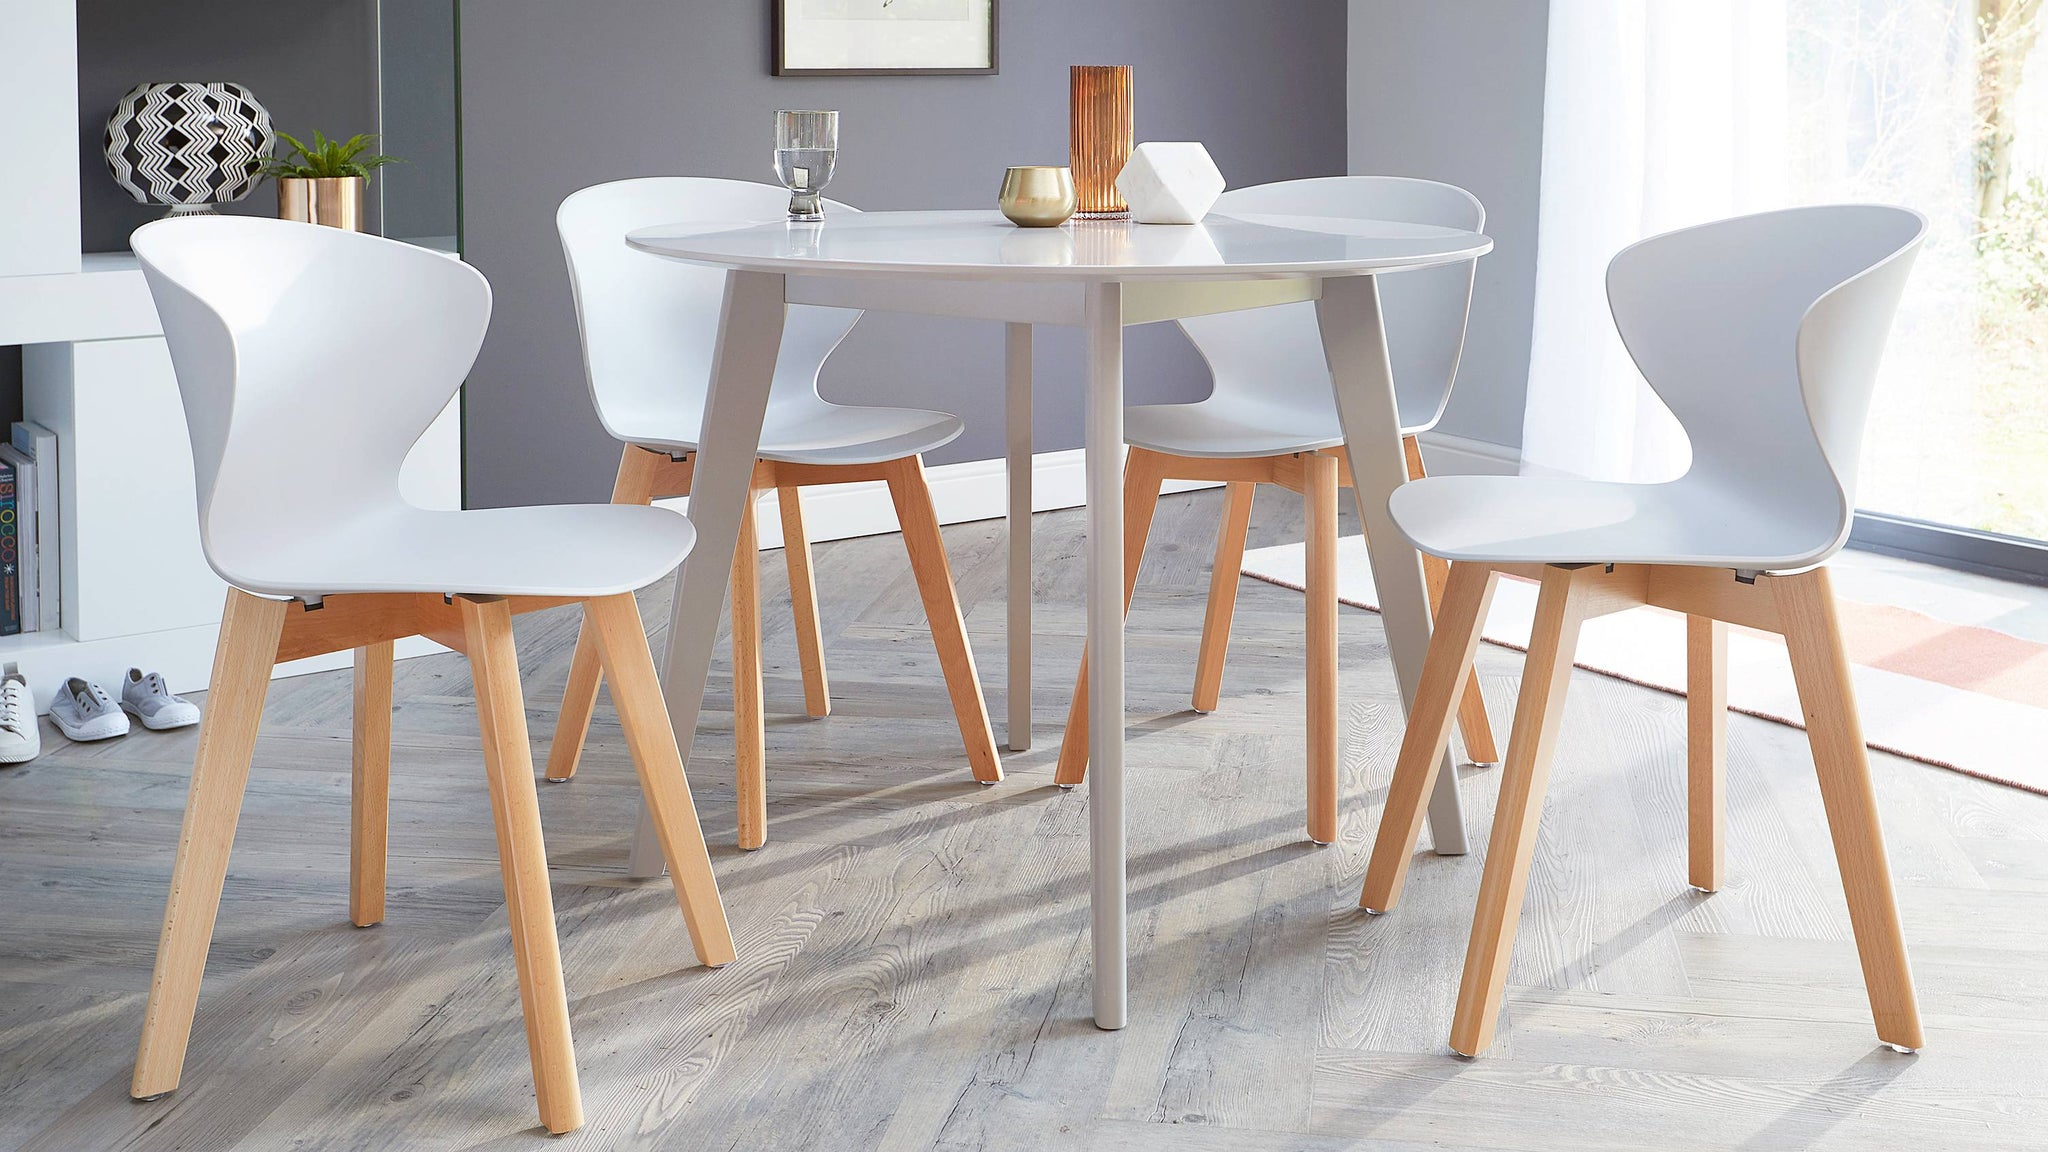 Small affordable dining sets